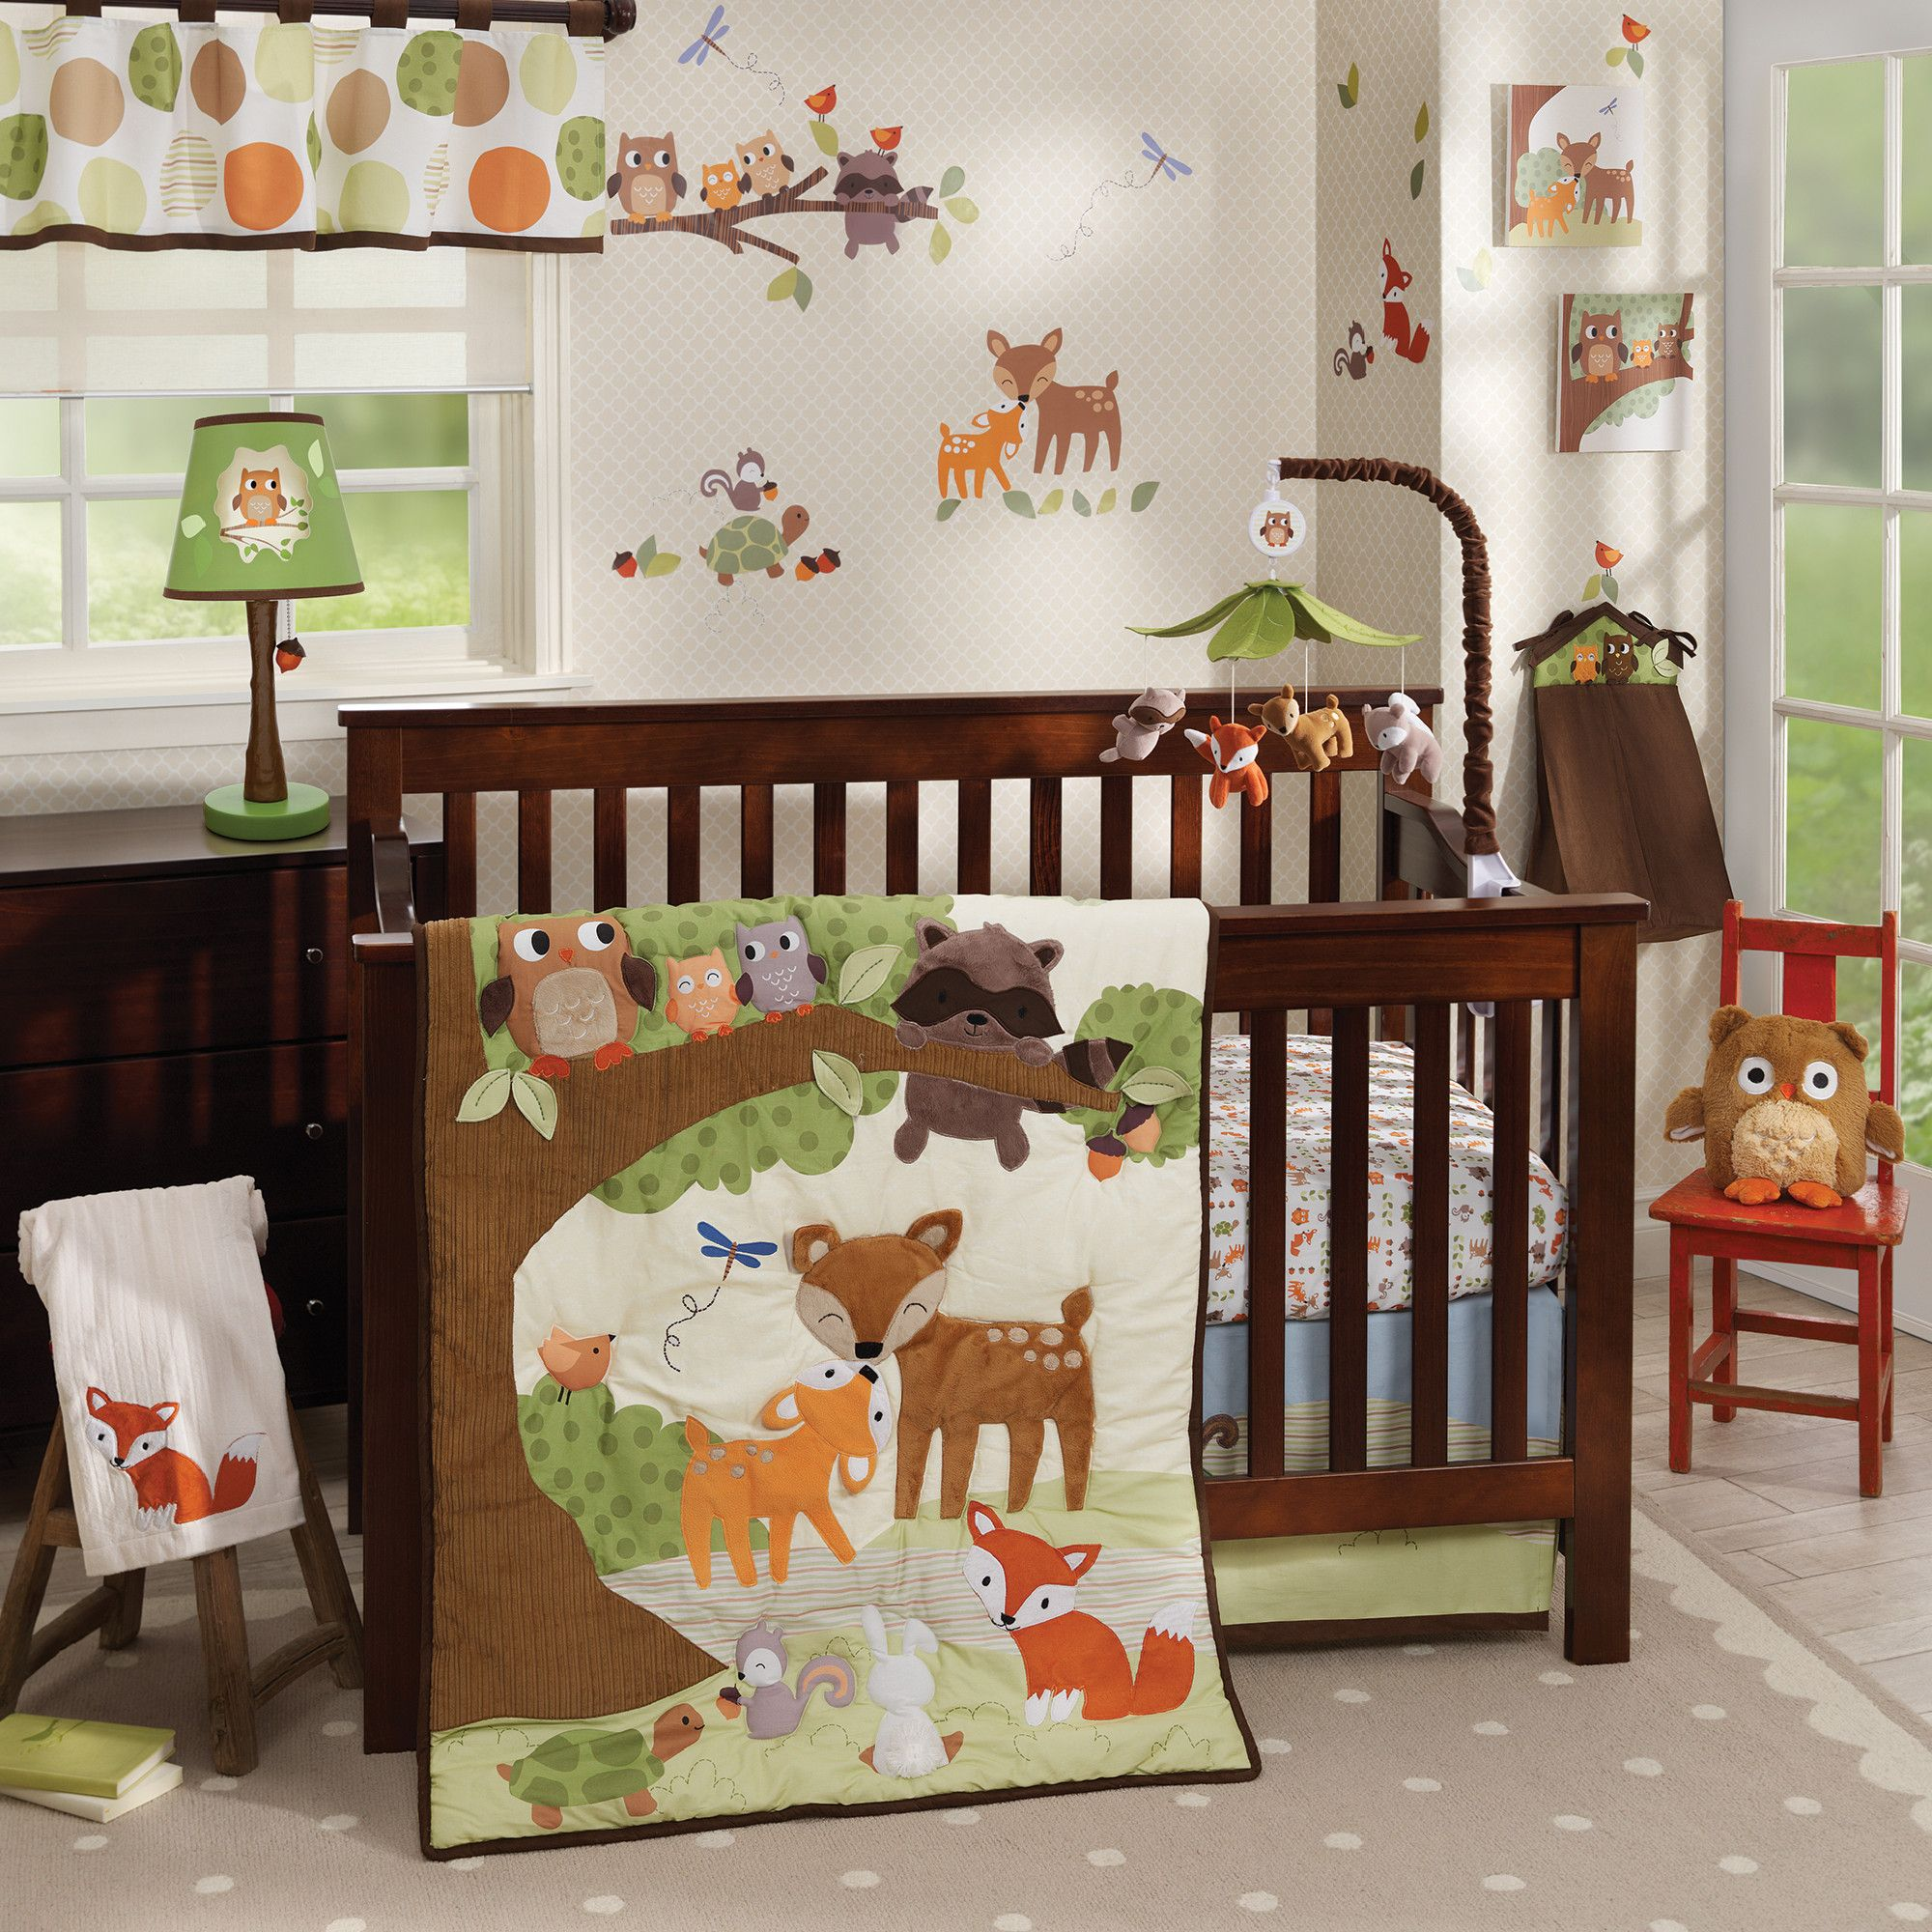 transform your nursery into a forest full of animal friends with the woodland tales bedding collection from lambs ivy the collection includes a bedding set - Woodland Nursery Decor